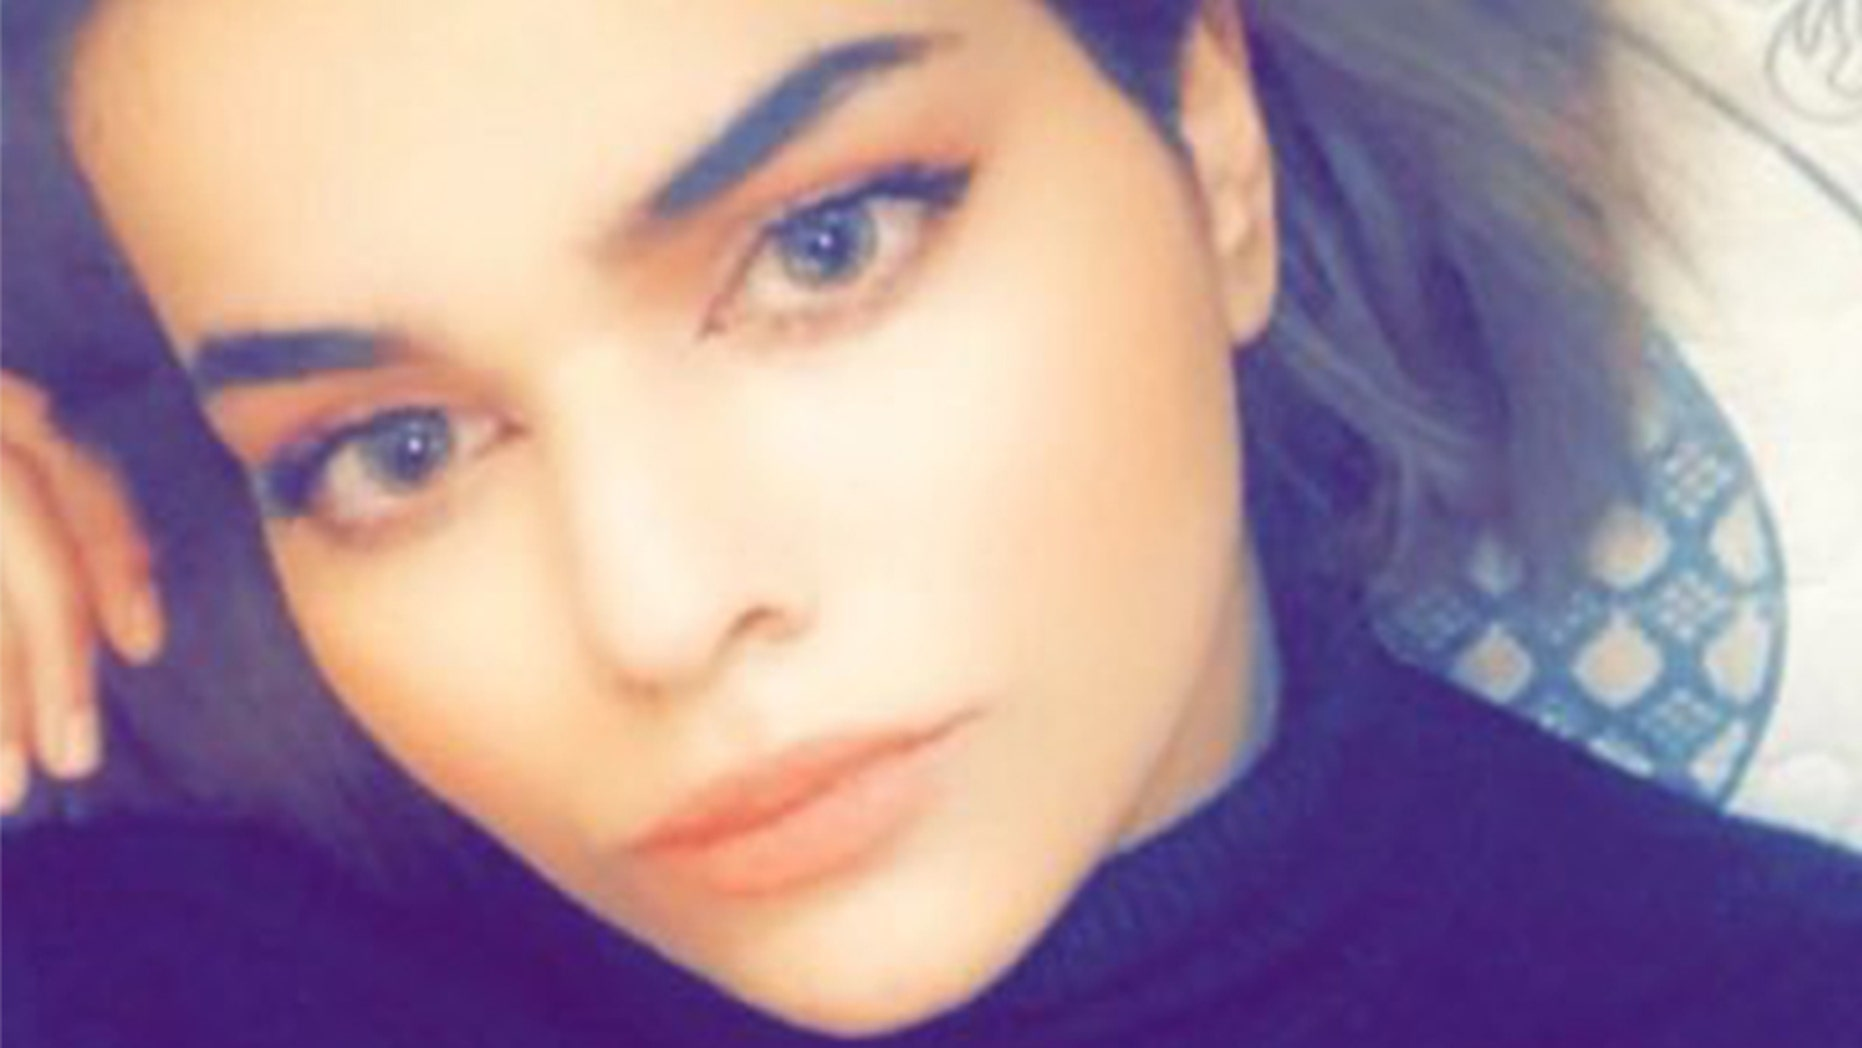 Rahaf Mohammed Alqunun, 18, is pleading for help as officials in Thailand try to return her to her family, who she claims will kill her.